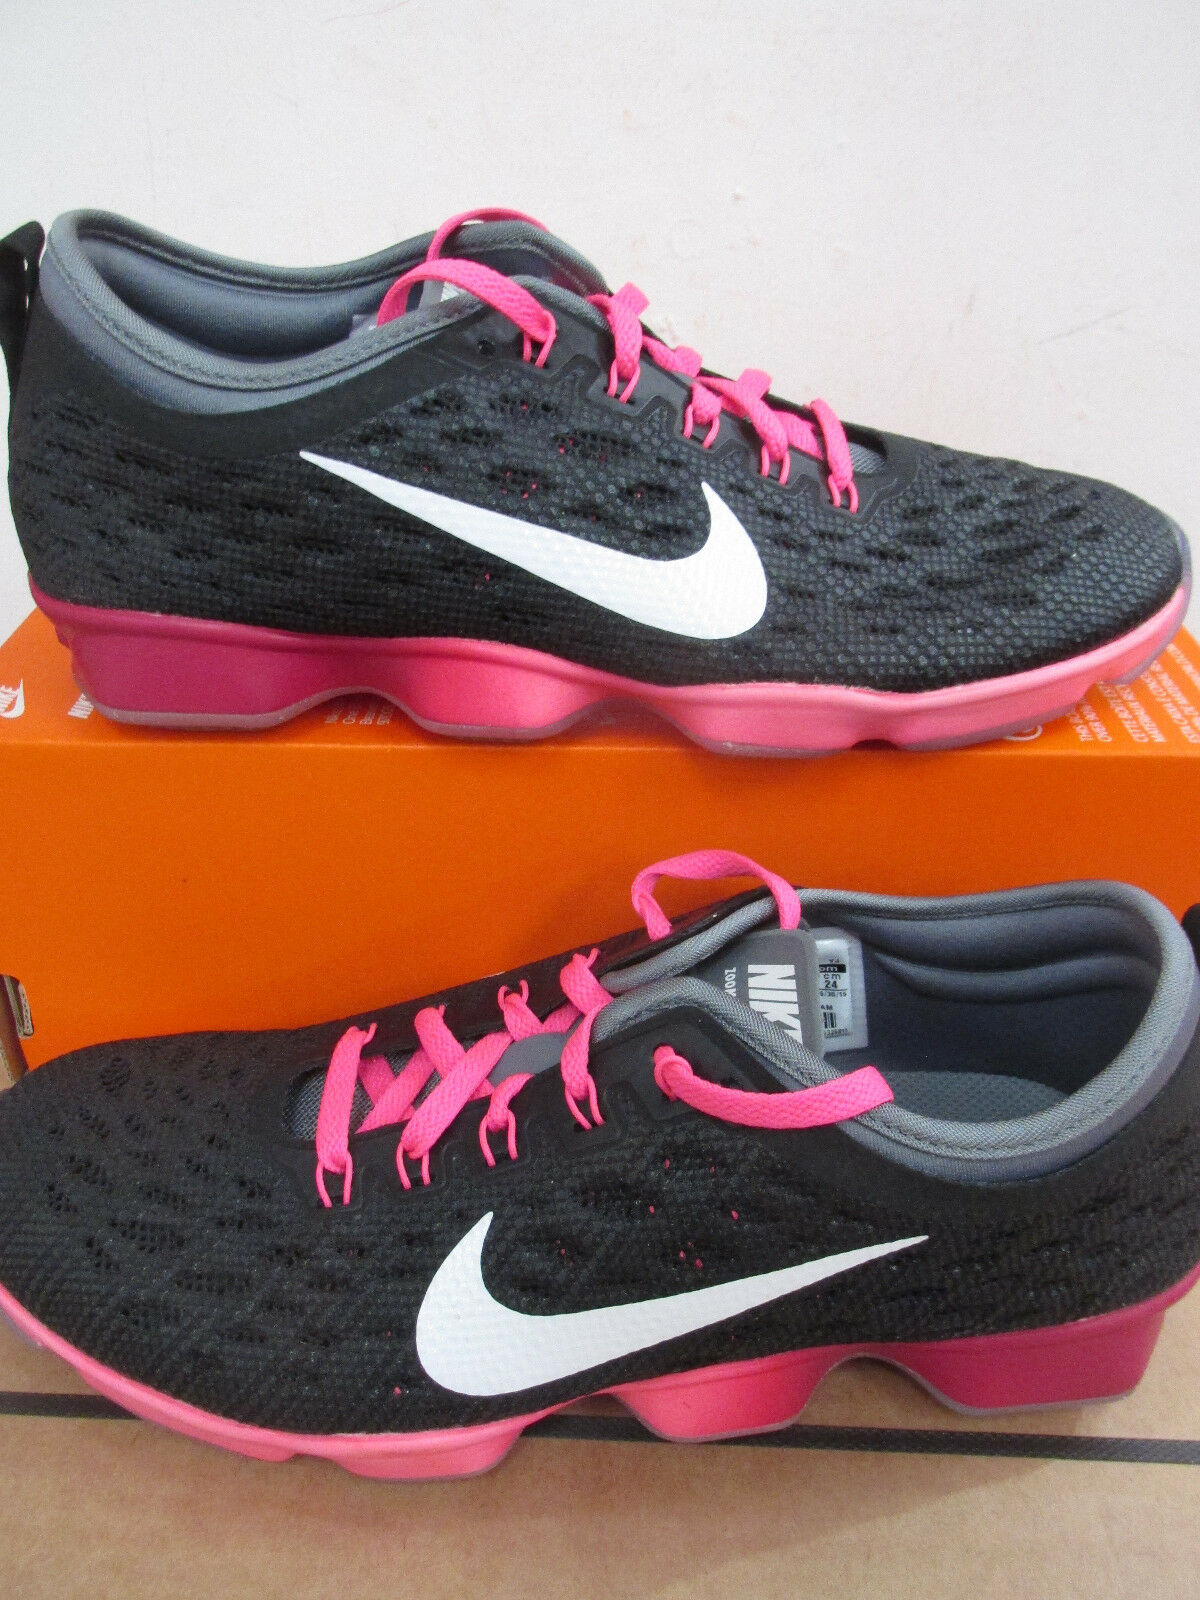 Nike womens zoom fit agility running trainers 684984 006 sneakers CLEARANCE